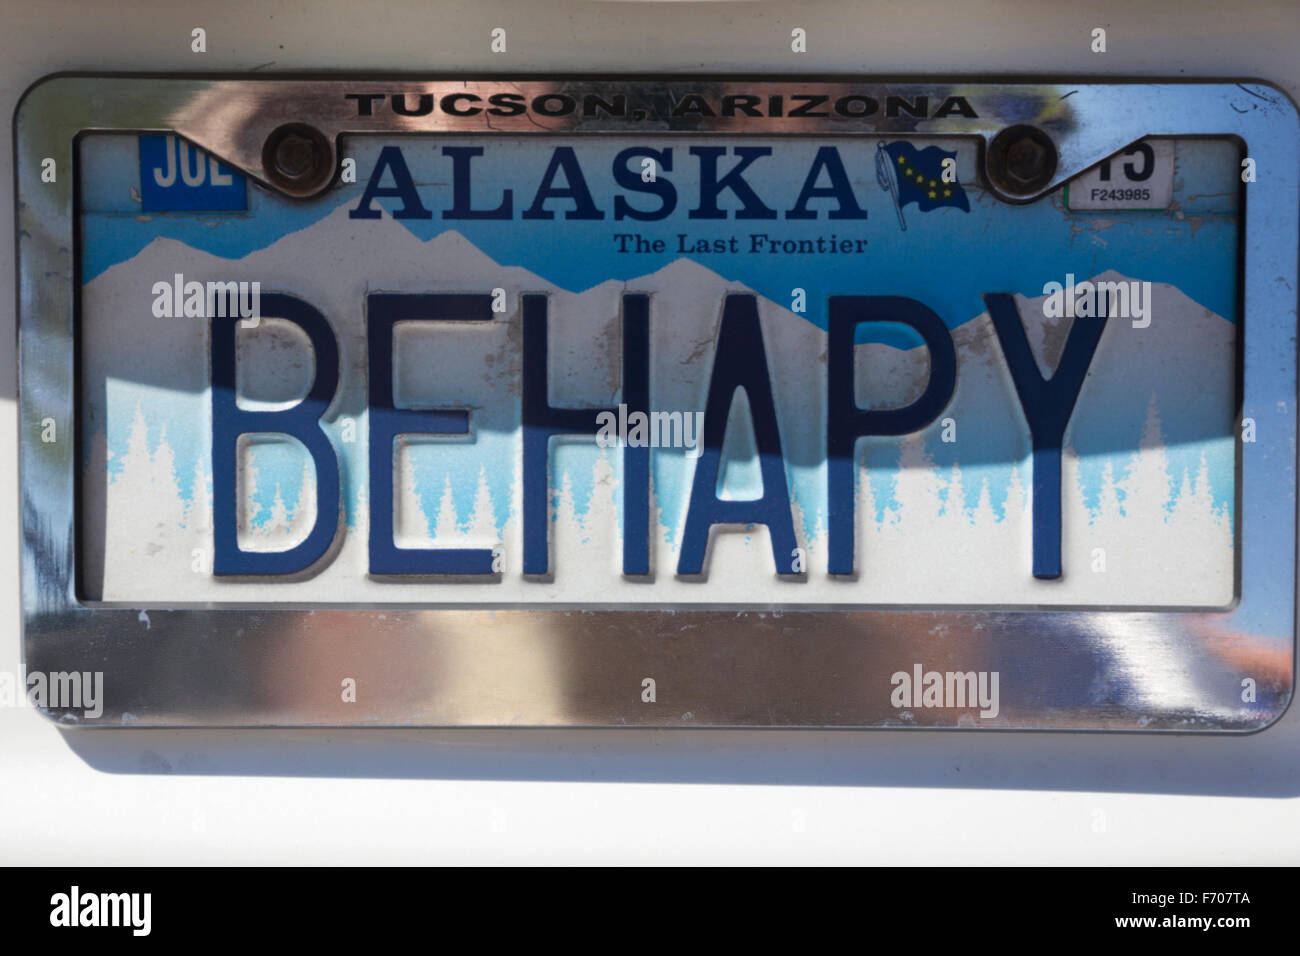 Behapy vanity license plate, Alaska, means 'Be Happy' - Stock Image